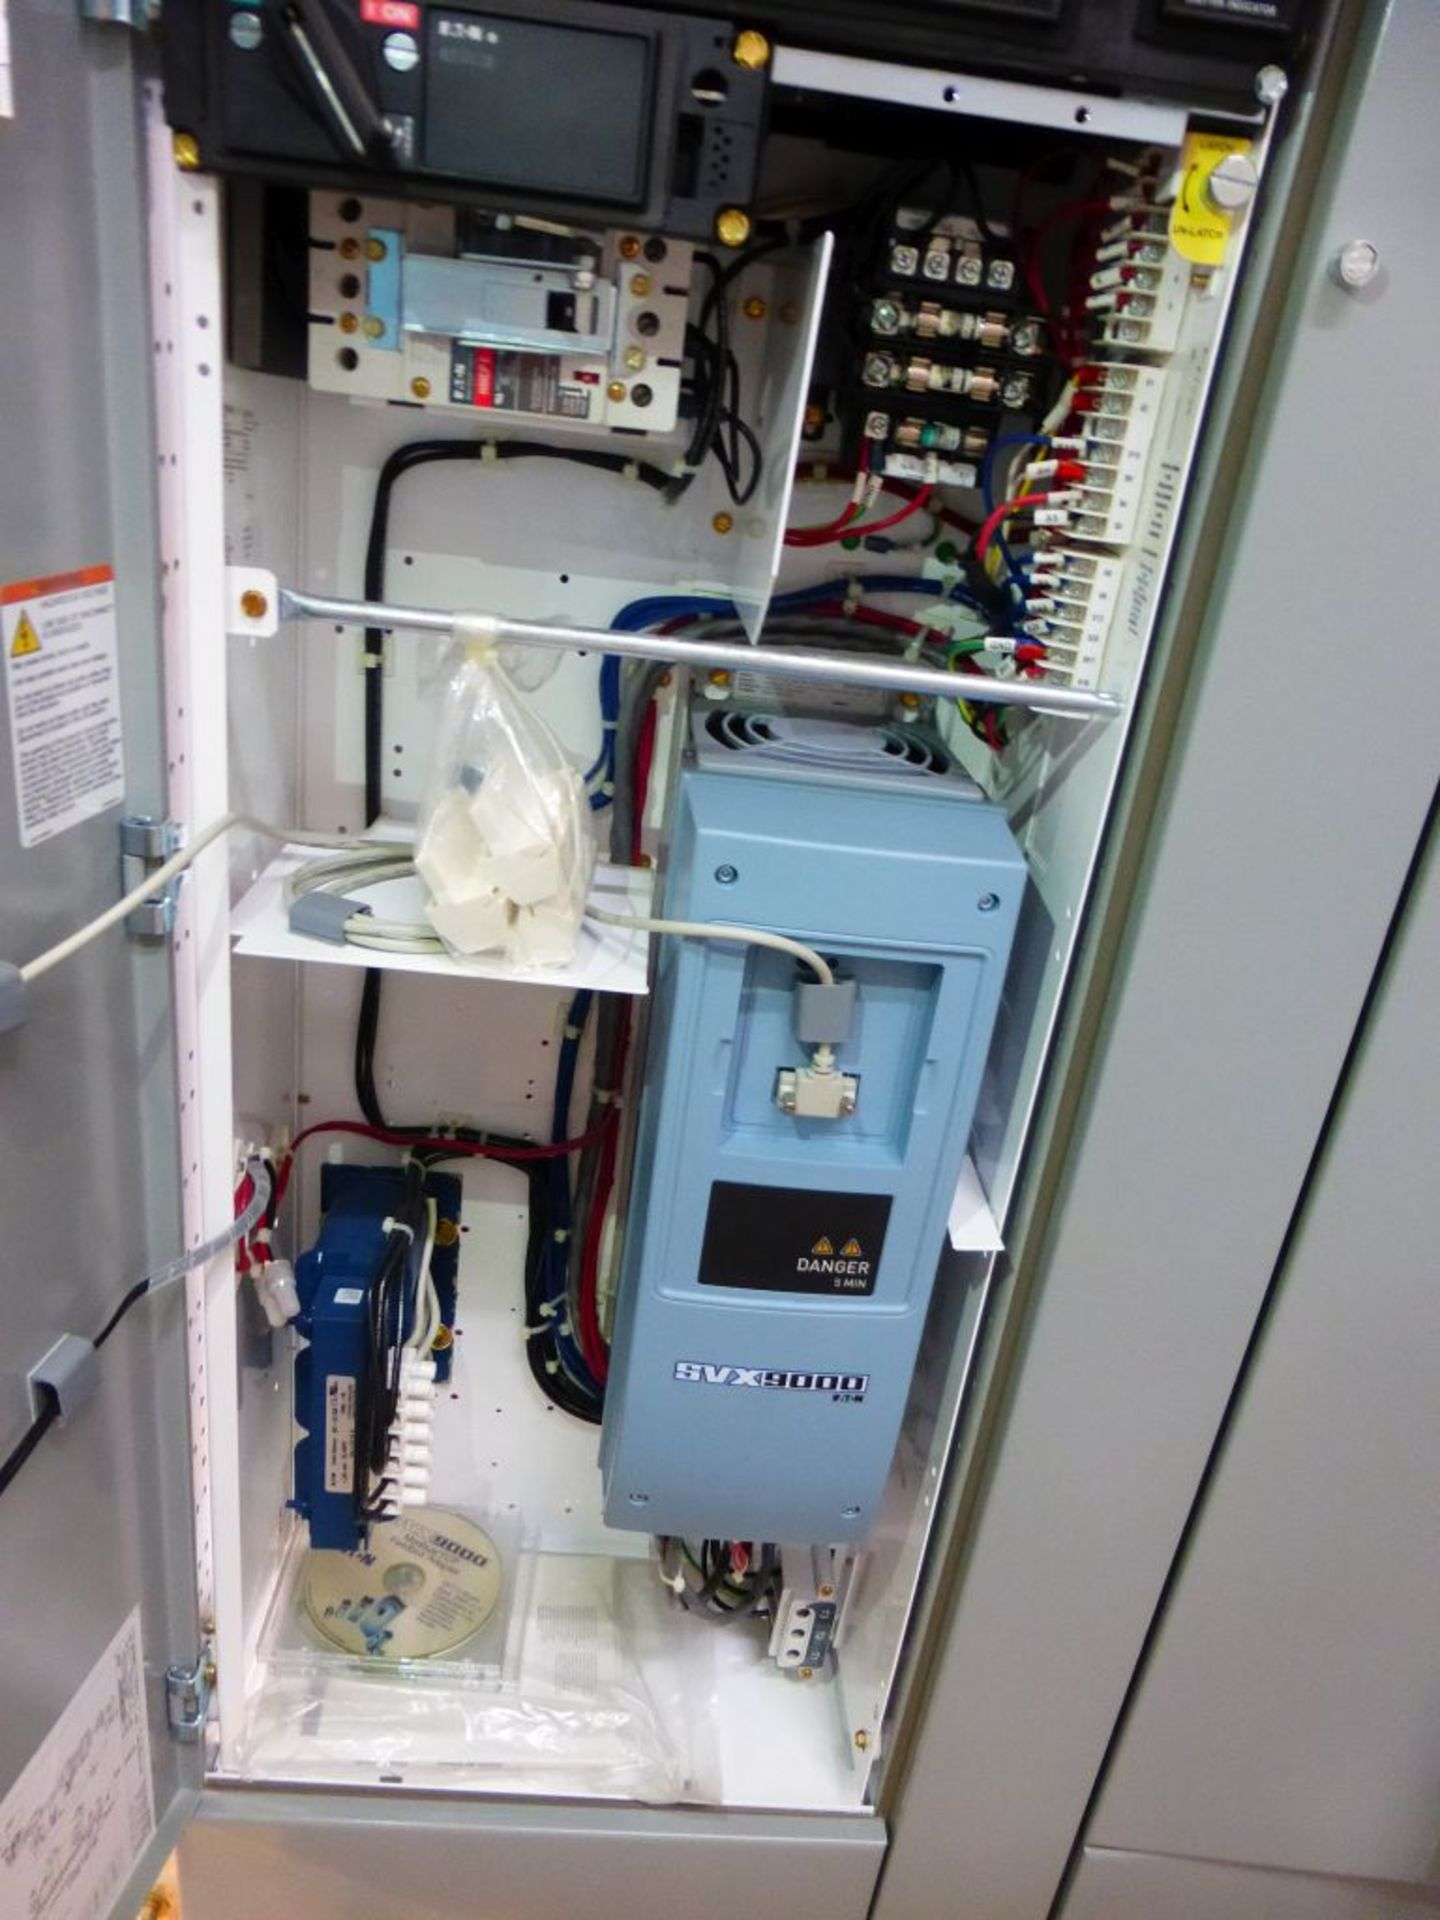 Eaton Freedom 2100 Series Motor Control Center   (4) SVX900-30A, with Eaton AF Drives, SVX9000, - Image 55 of 60